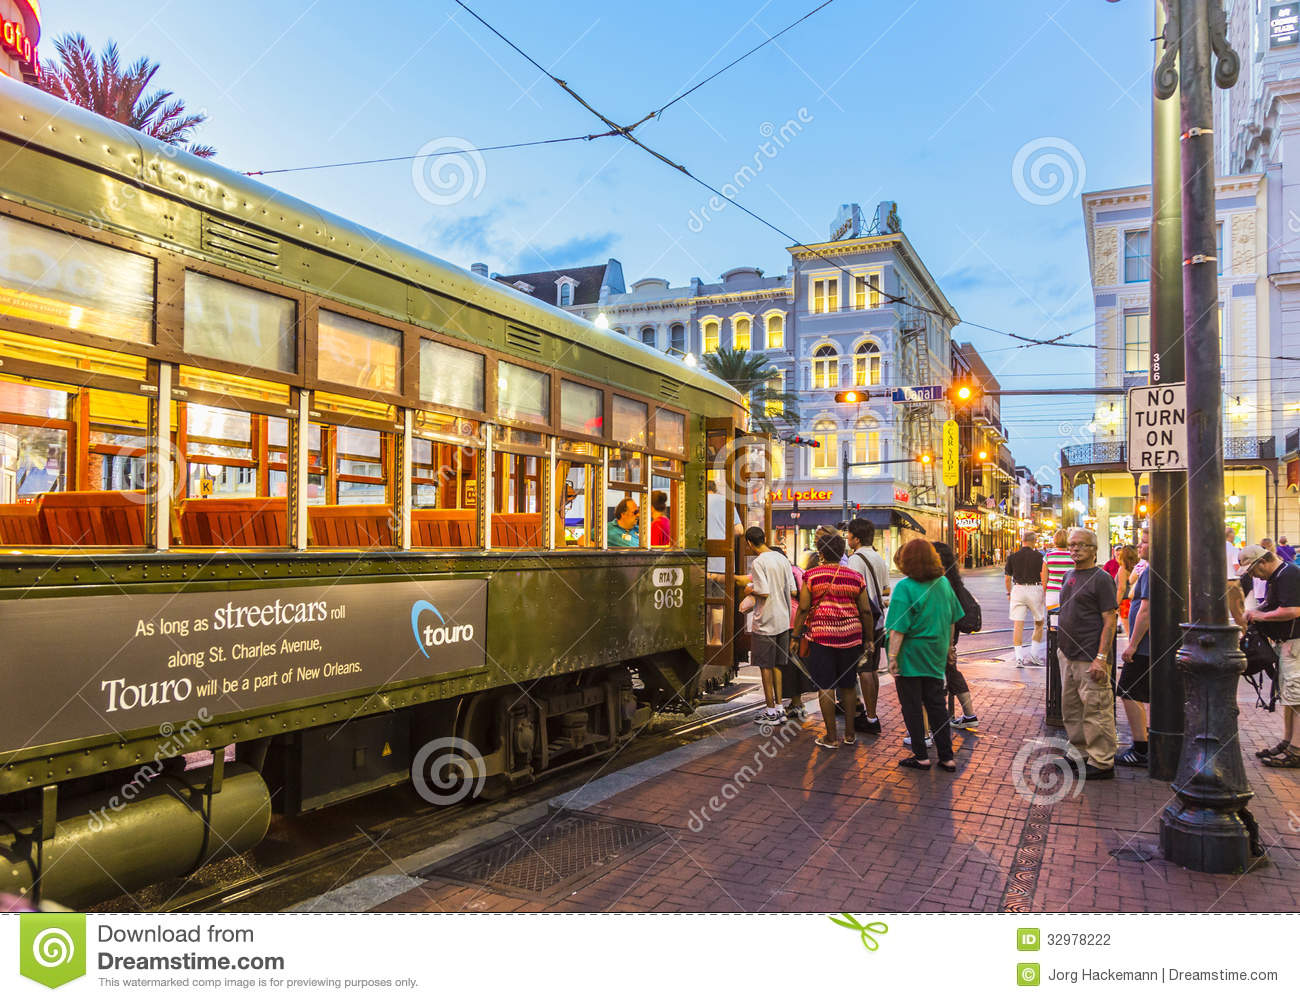 New Orleans Street Cars: People Travel With The Famous Old Streetcar Editorial